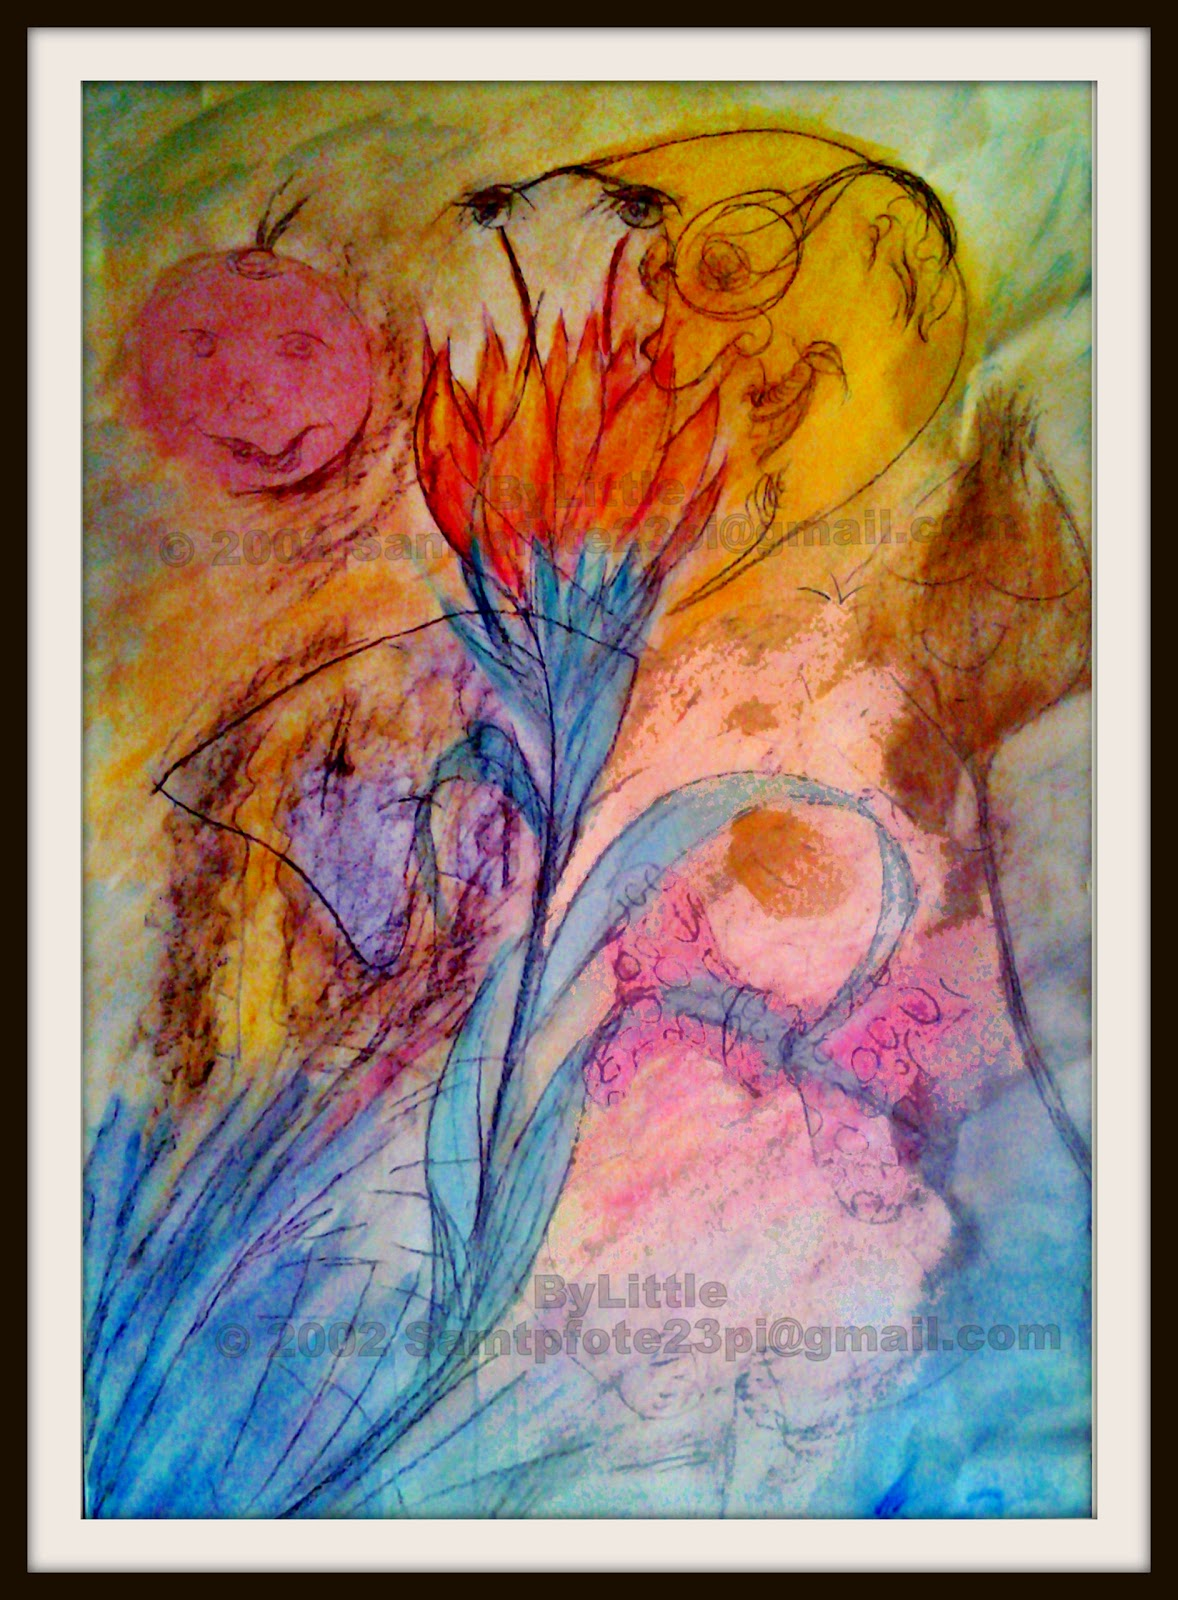 Bild By Little, Aquarell auf Papier, © 2002 Samtpfote23pi@gmail.com